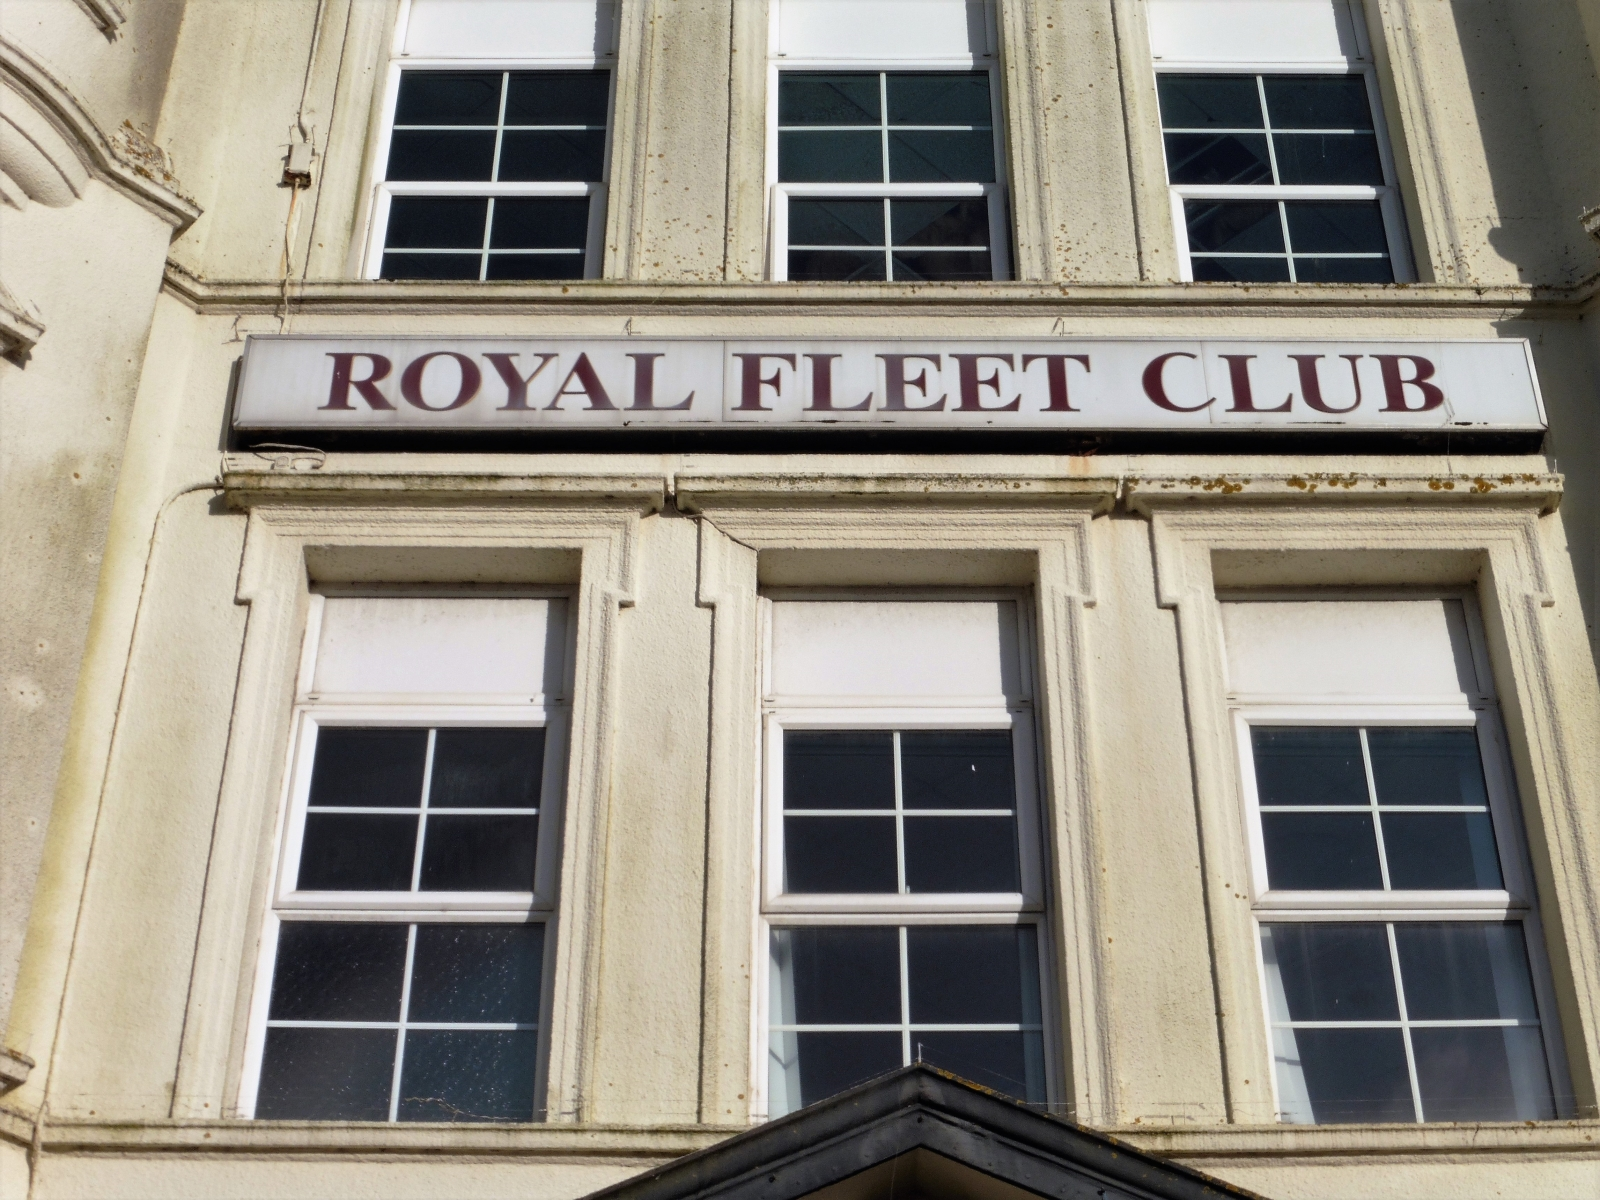 Royal Fleet Club Plymouth Scientology